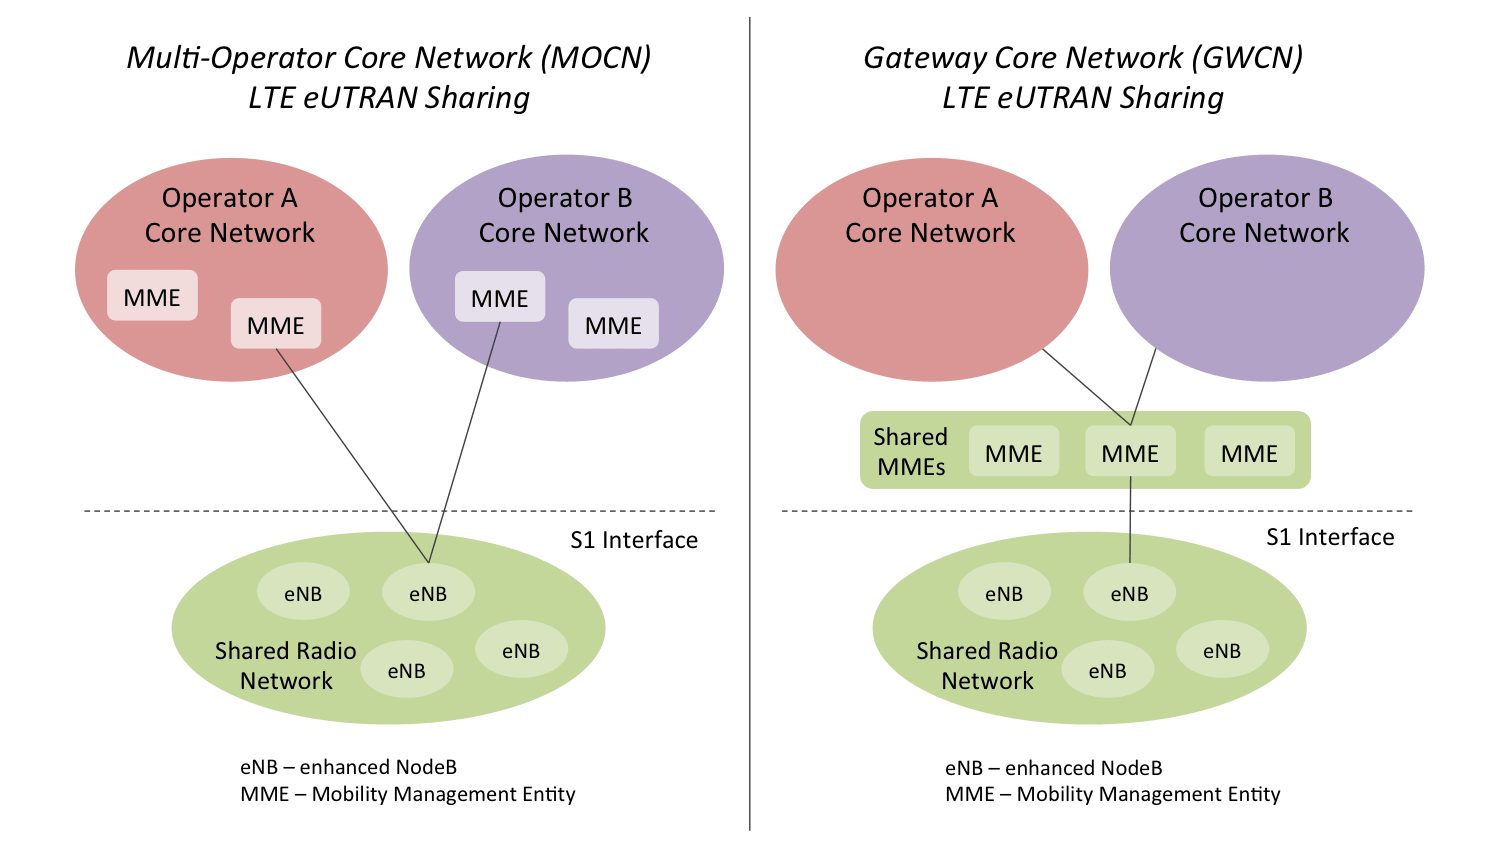 Diagram illustrating Multi-Operator Core Network (MOCN) and Gateway Core Network (GCN) approaches to LTE eUTRAN sharing